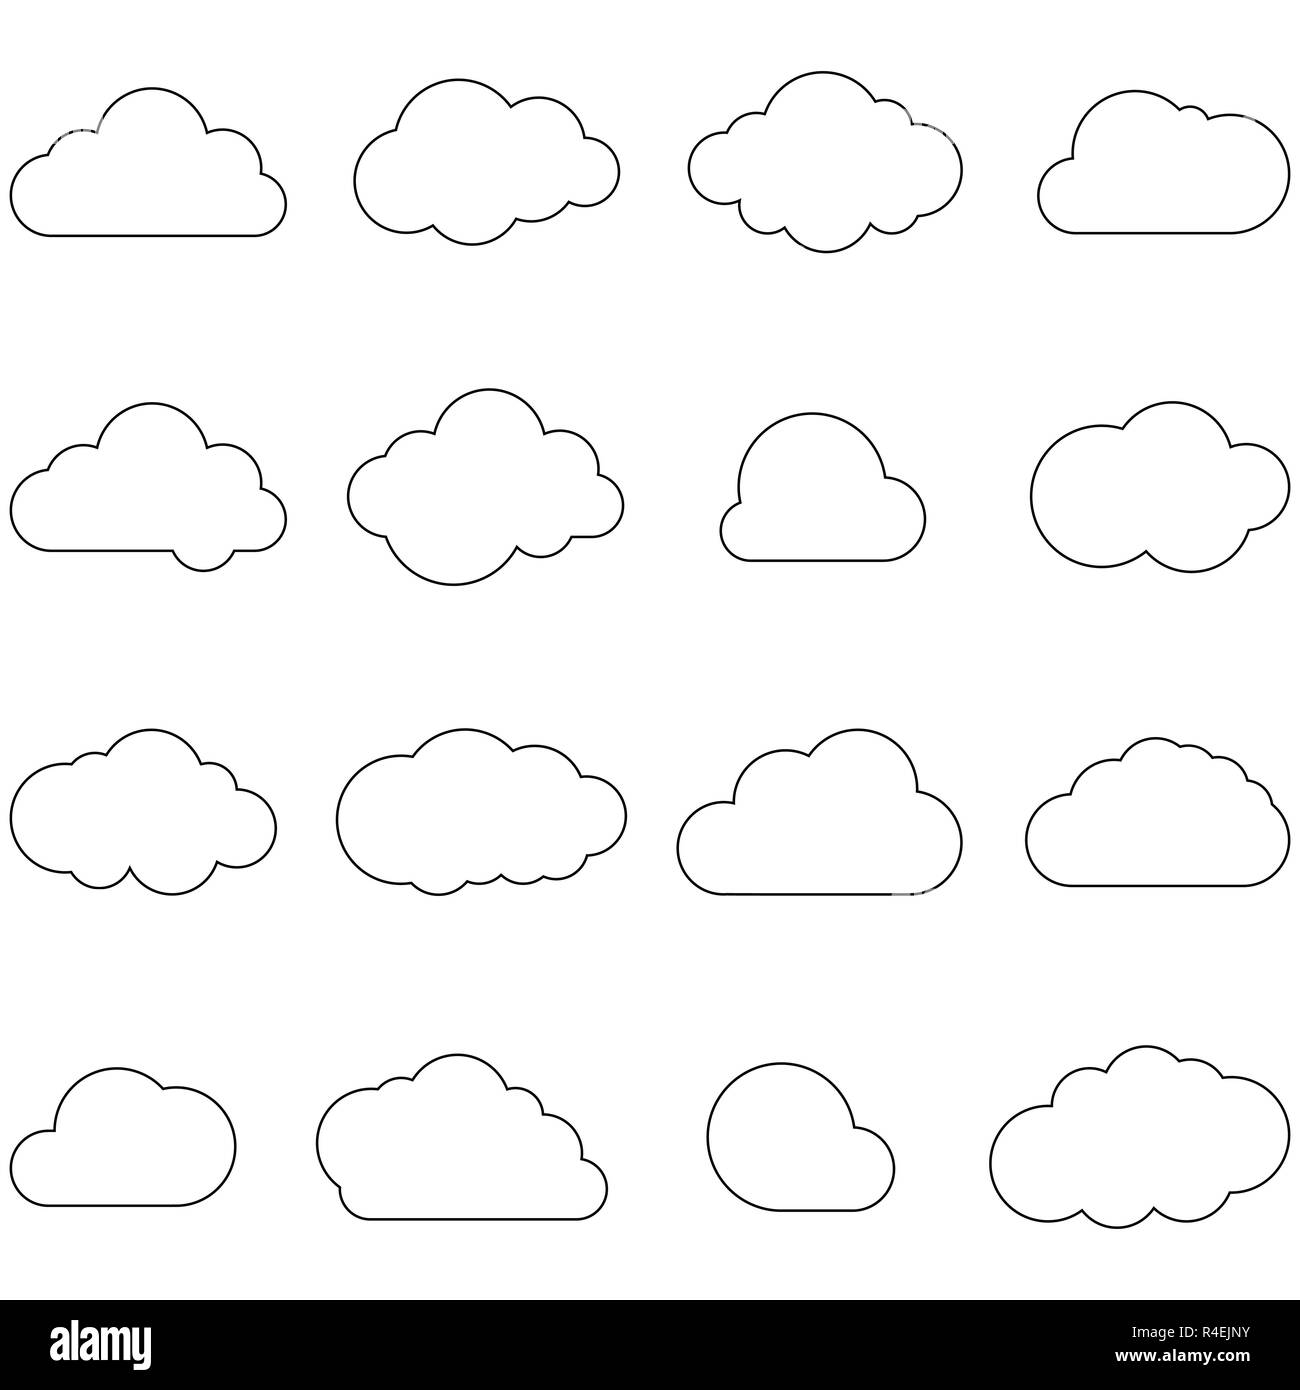 Clouds line art icon. Storage solution element, databases, networking, software image. Cloud or meteorology concept. Vector icons set. - Stock Image